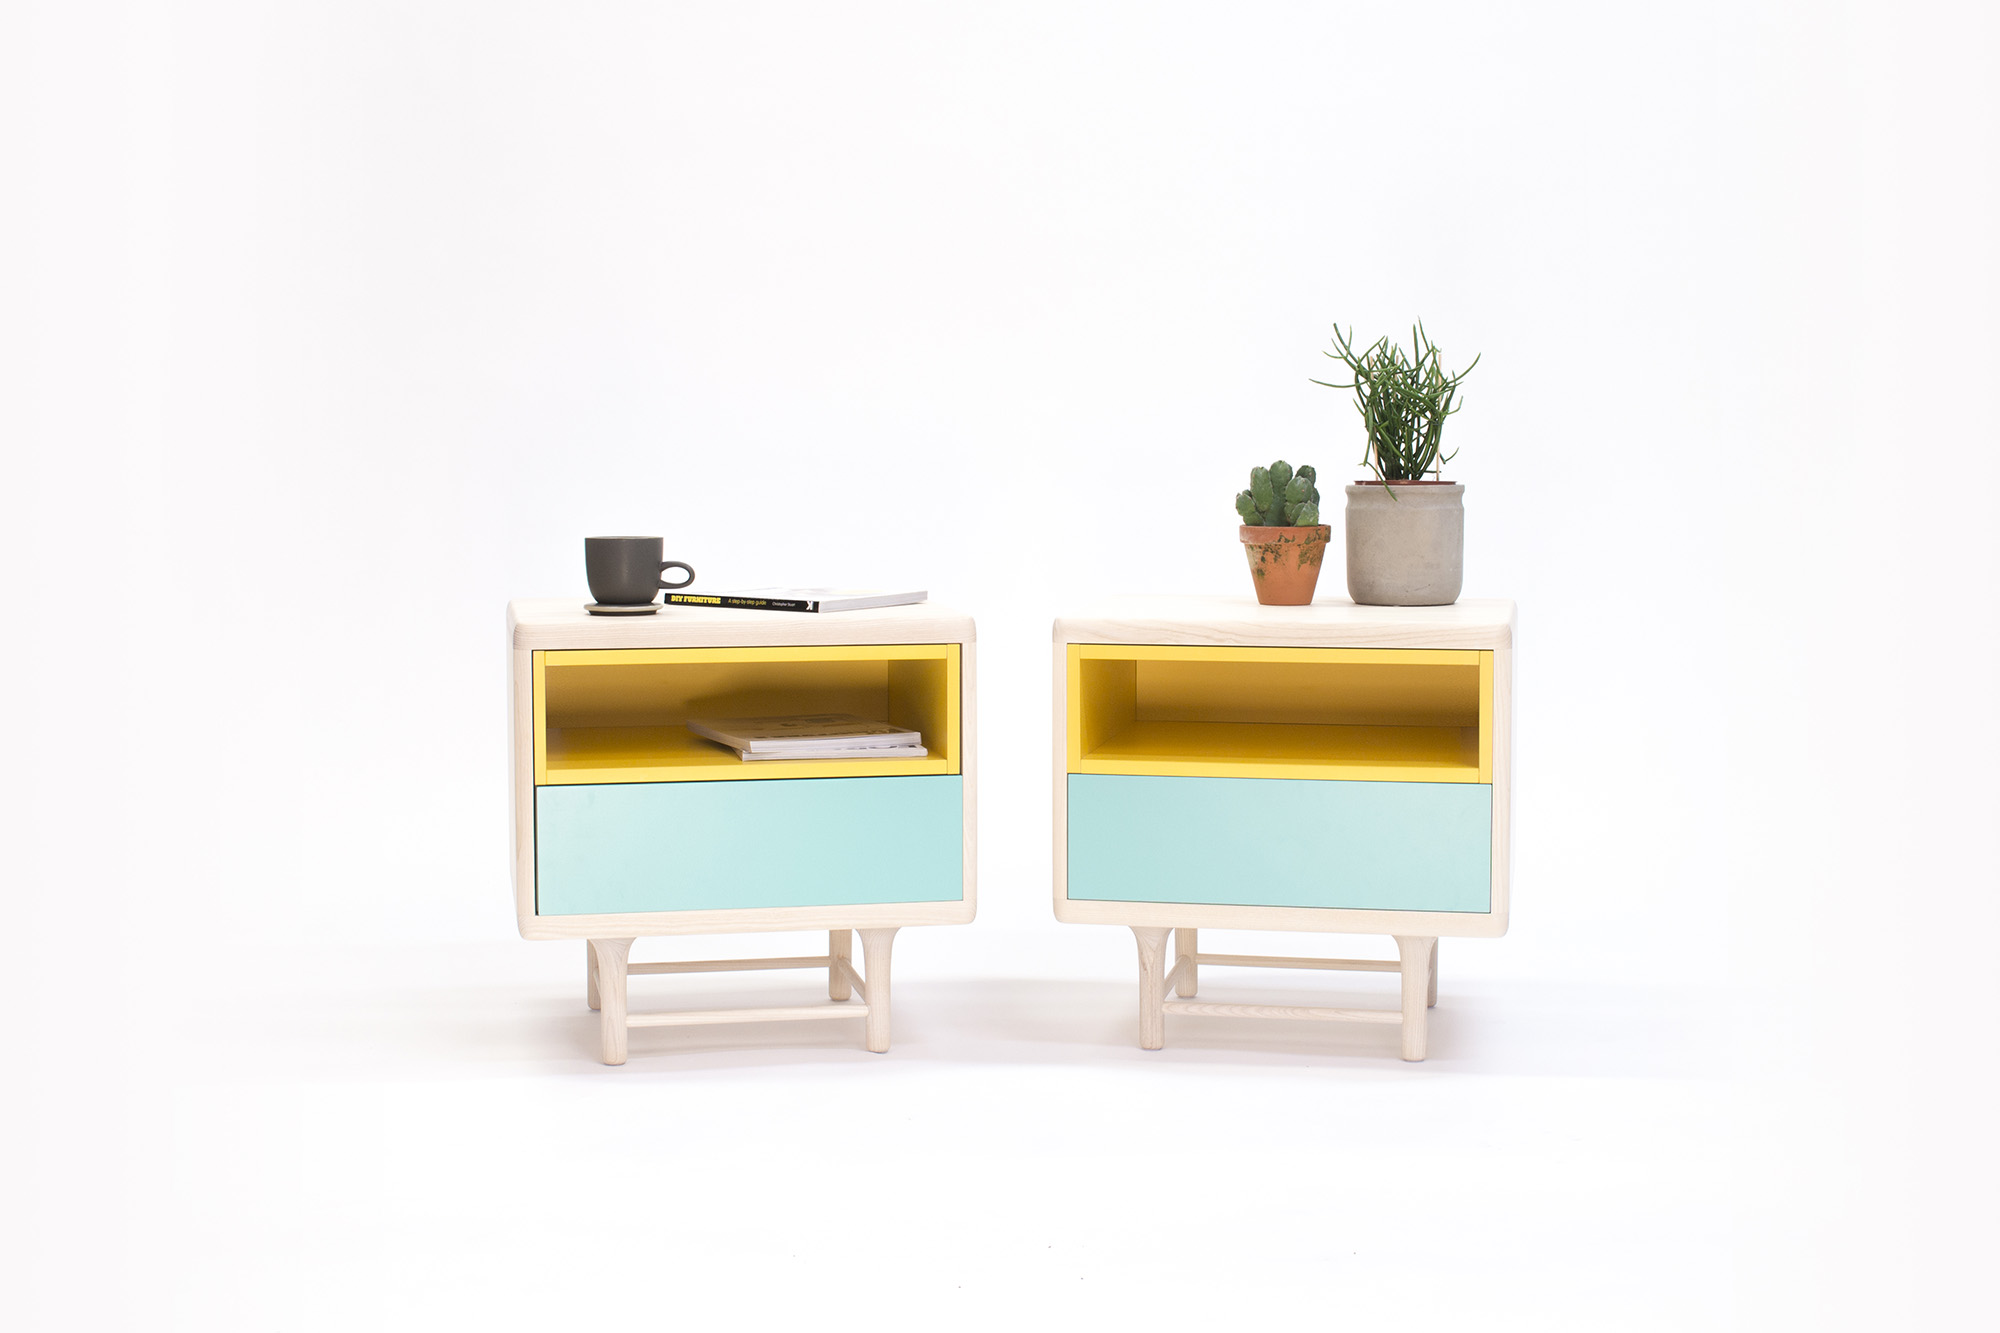 Minimal scandinavian furniture by designer carlos jim nez your no 1 source of architecture and - Furnitur design ...